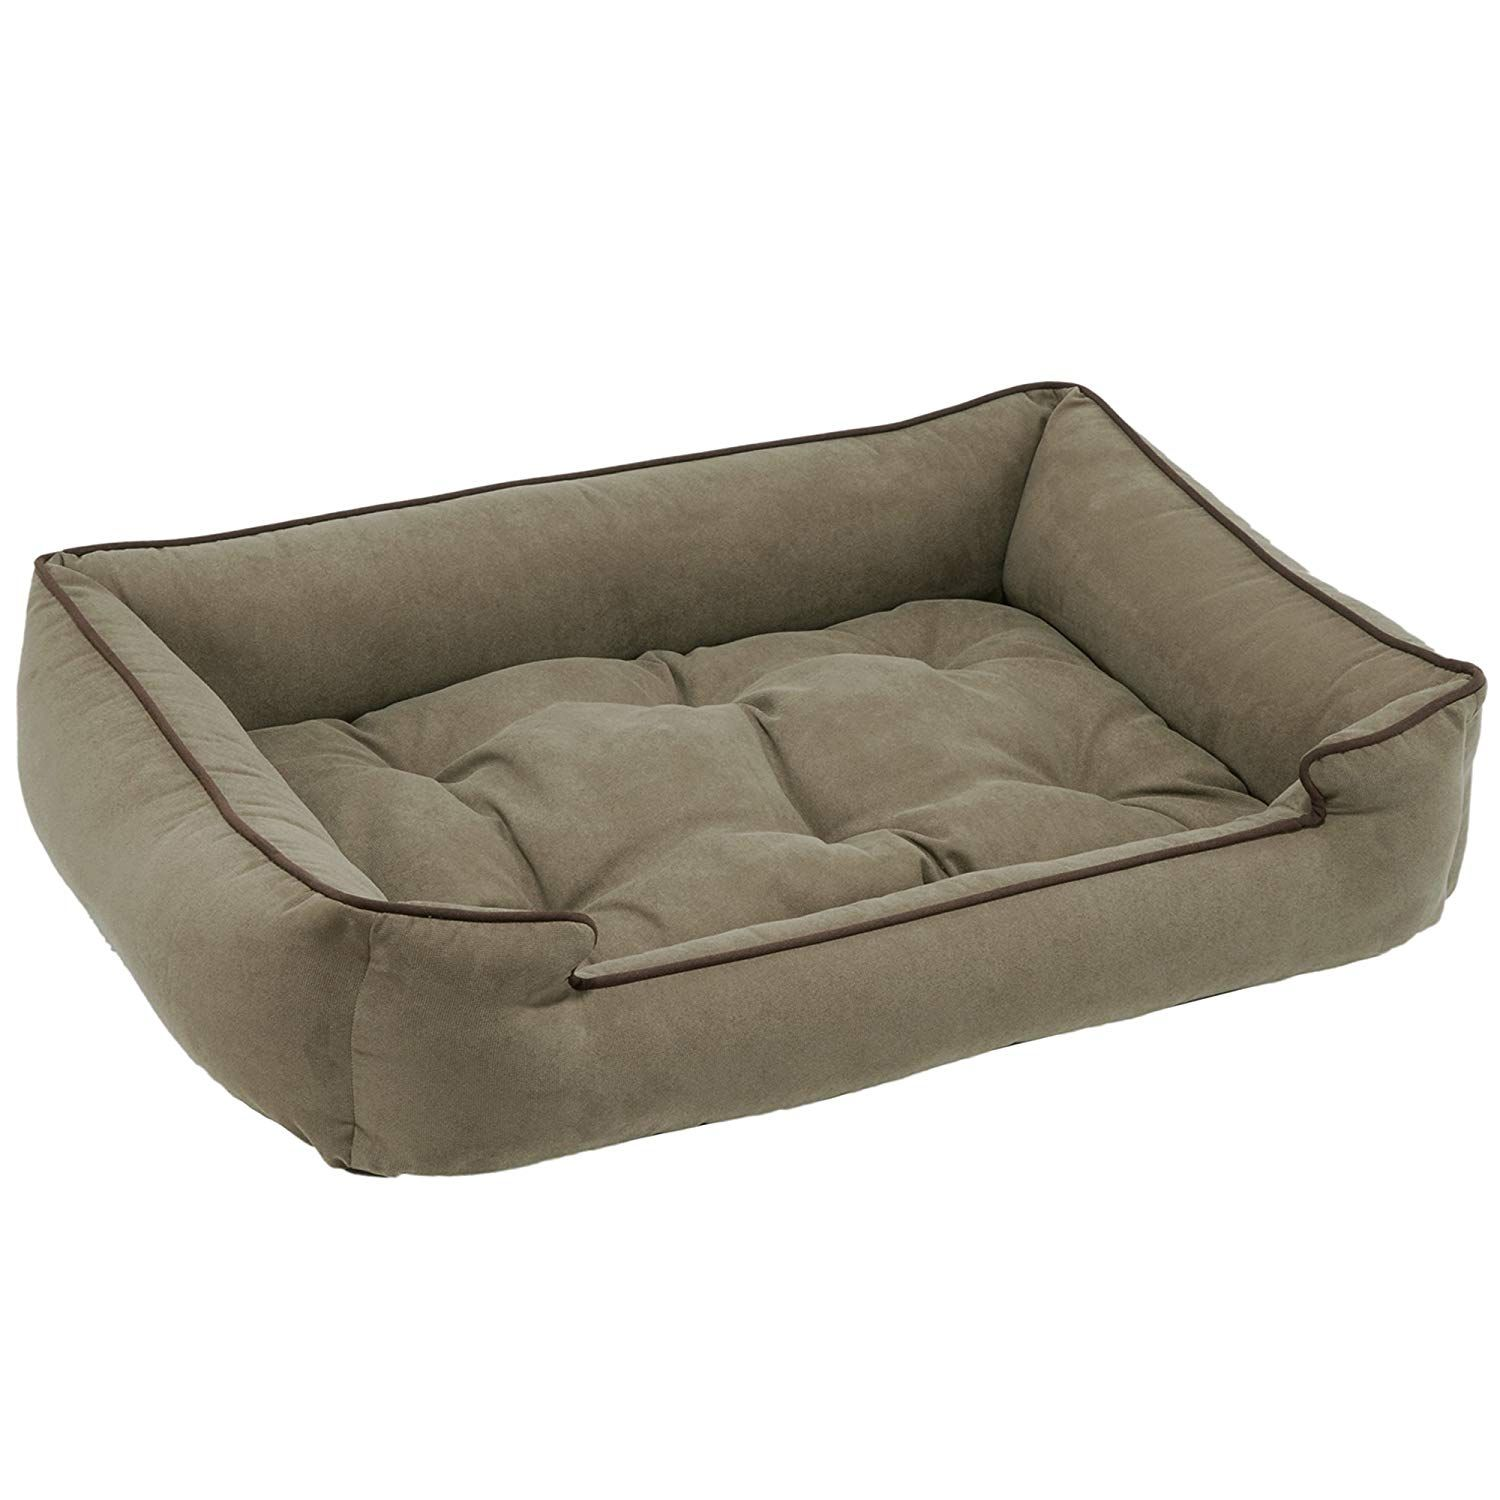 Jax and Bones Sleeper Dog Bed Hope that you actually do